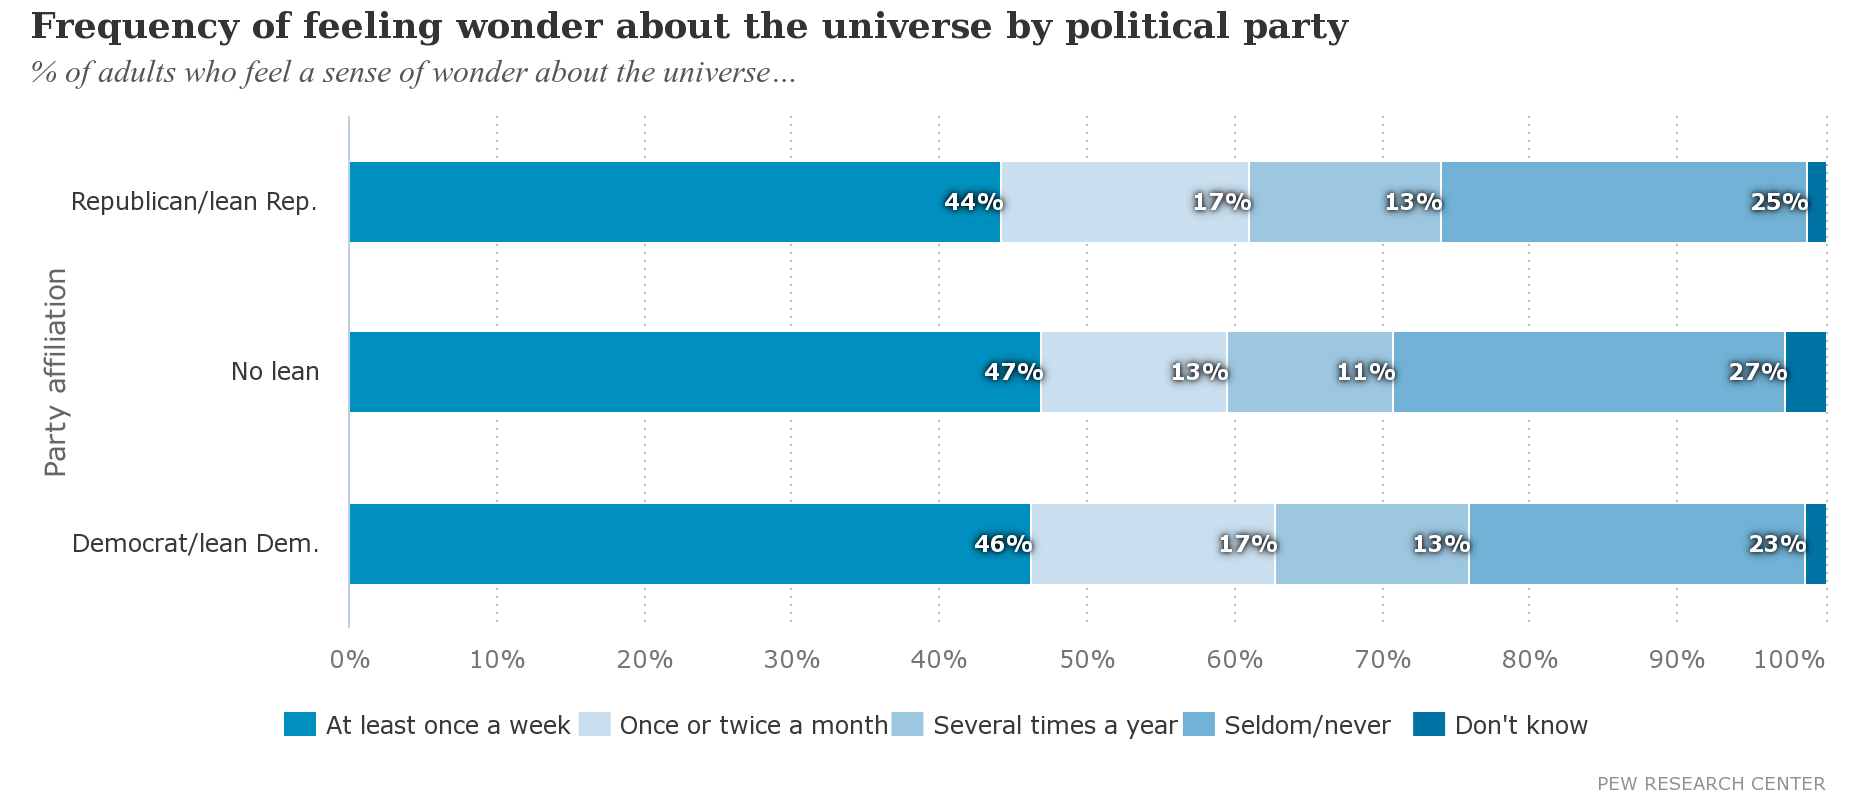 Frequency of feeling wonder about the universe by political party.png